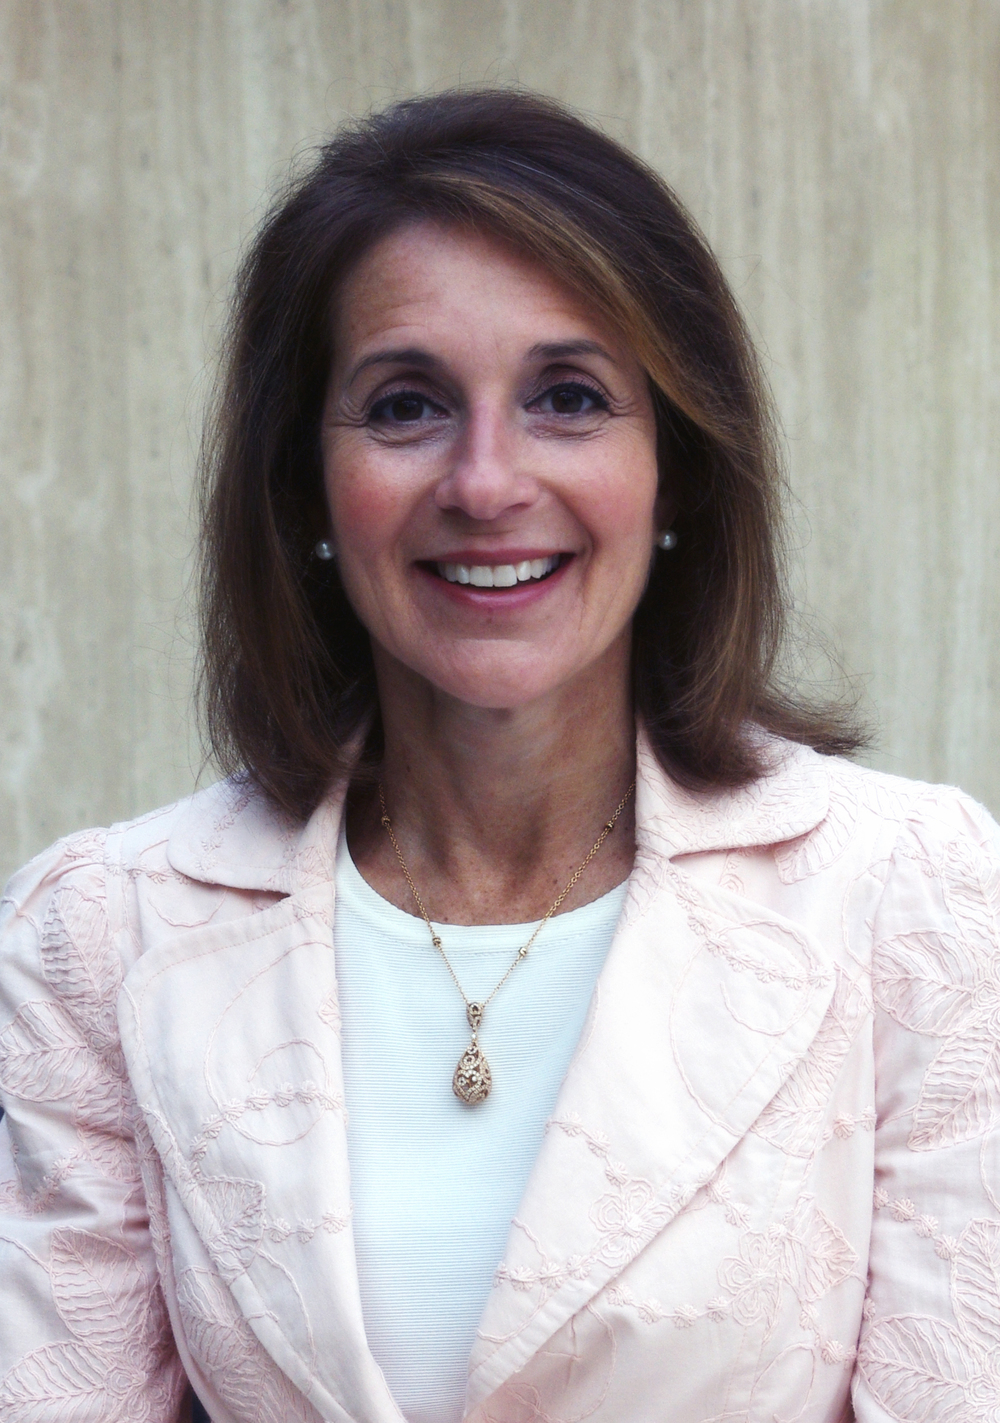 Brianne Weingarten, Advancing Women Executives Leader